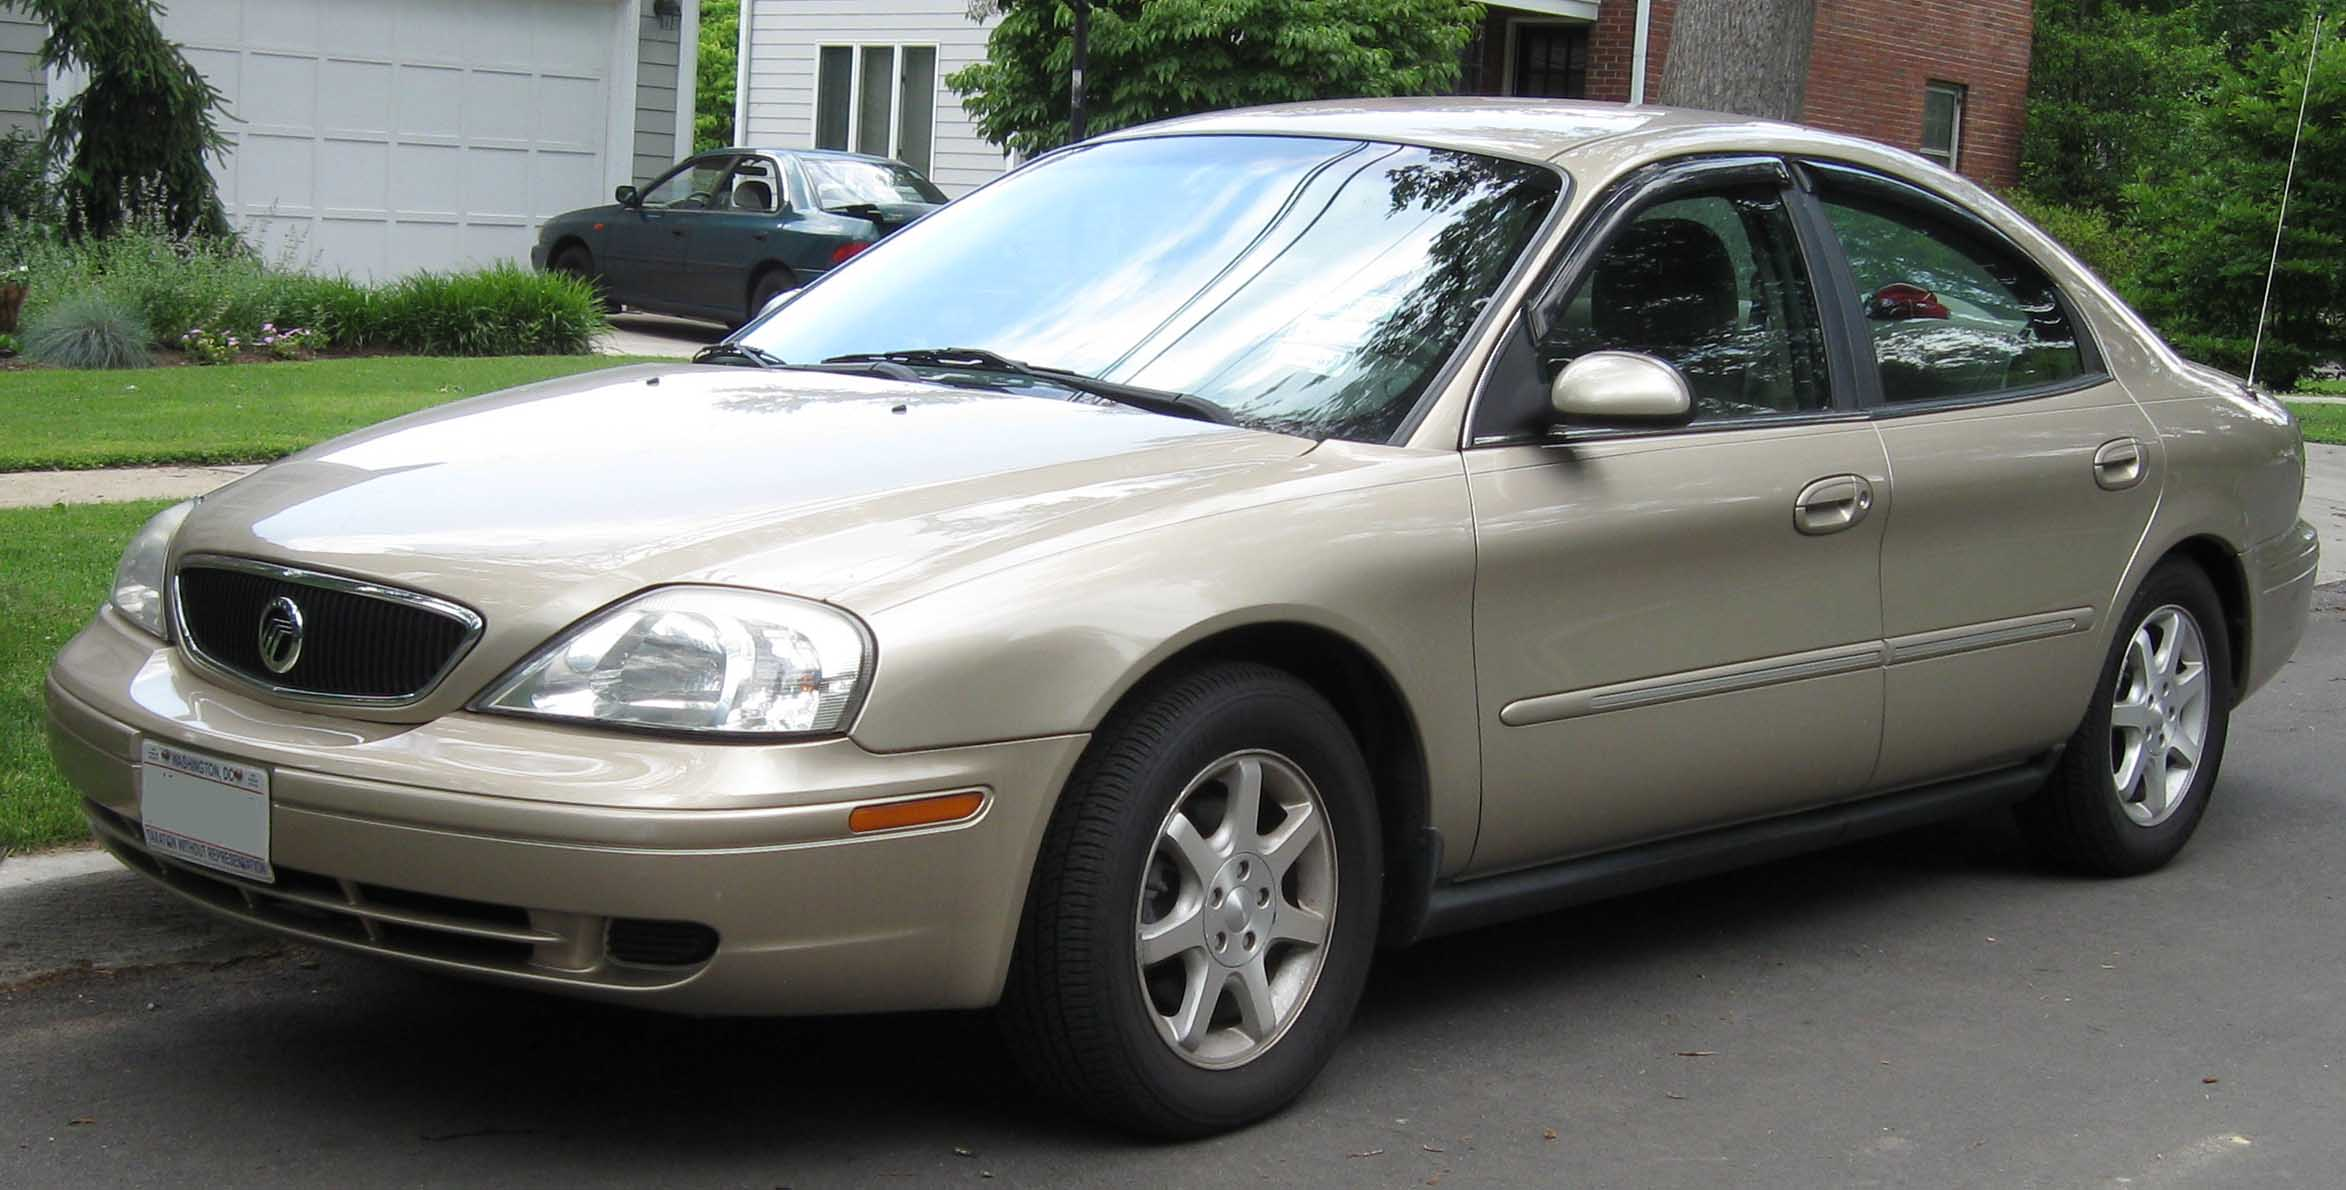 File:00-03 Mercury Sable GS sedan.jpg